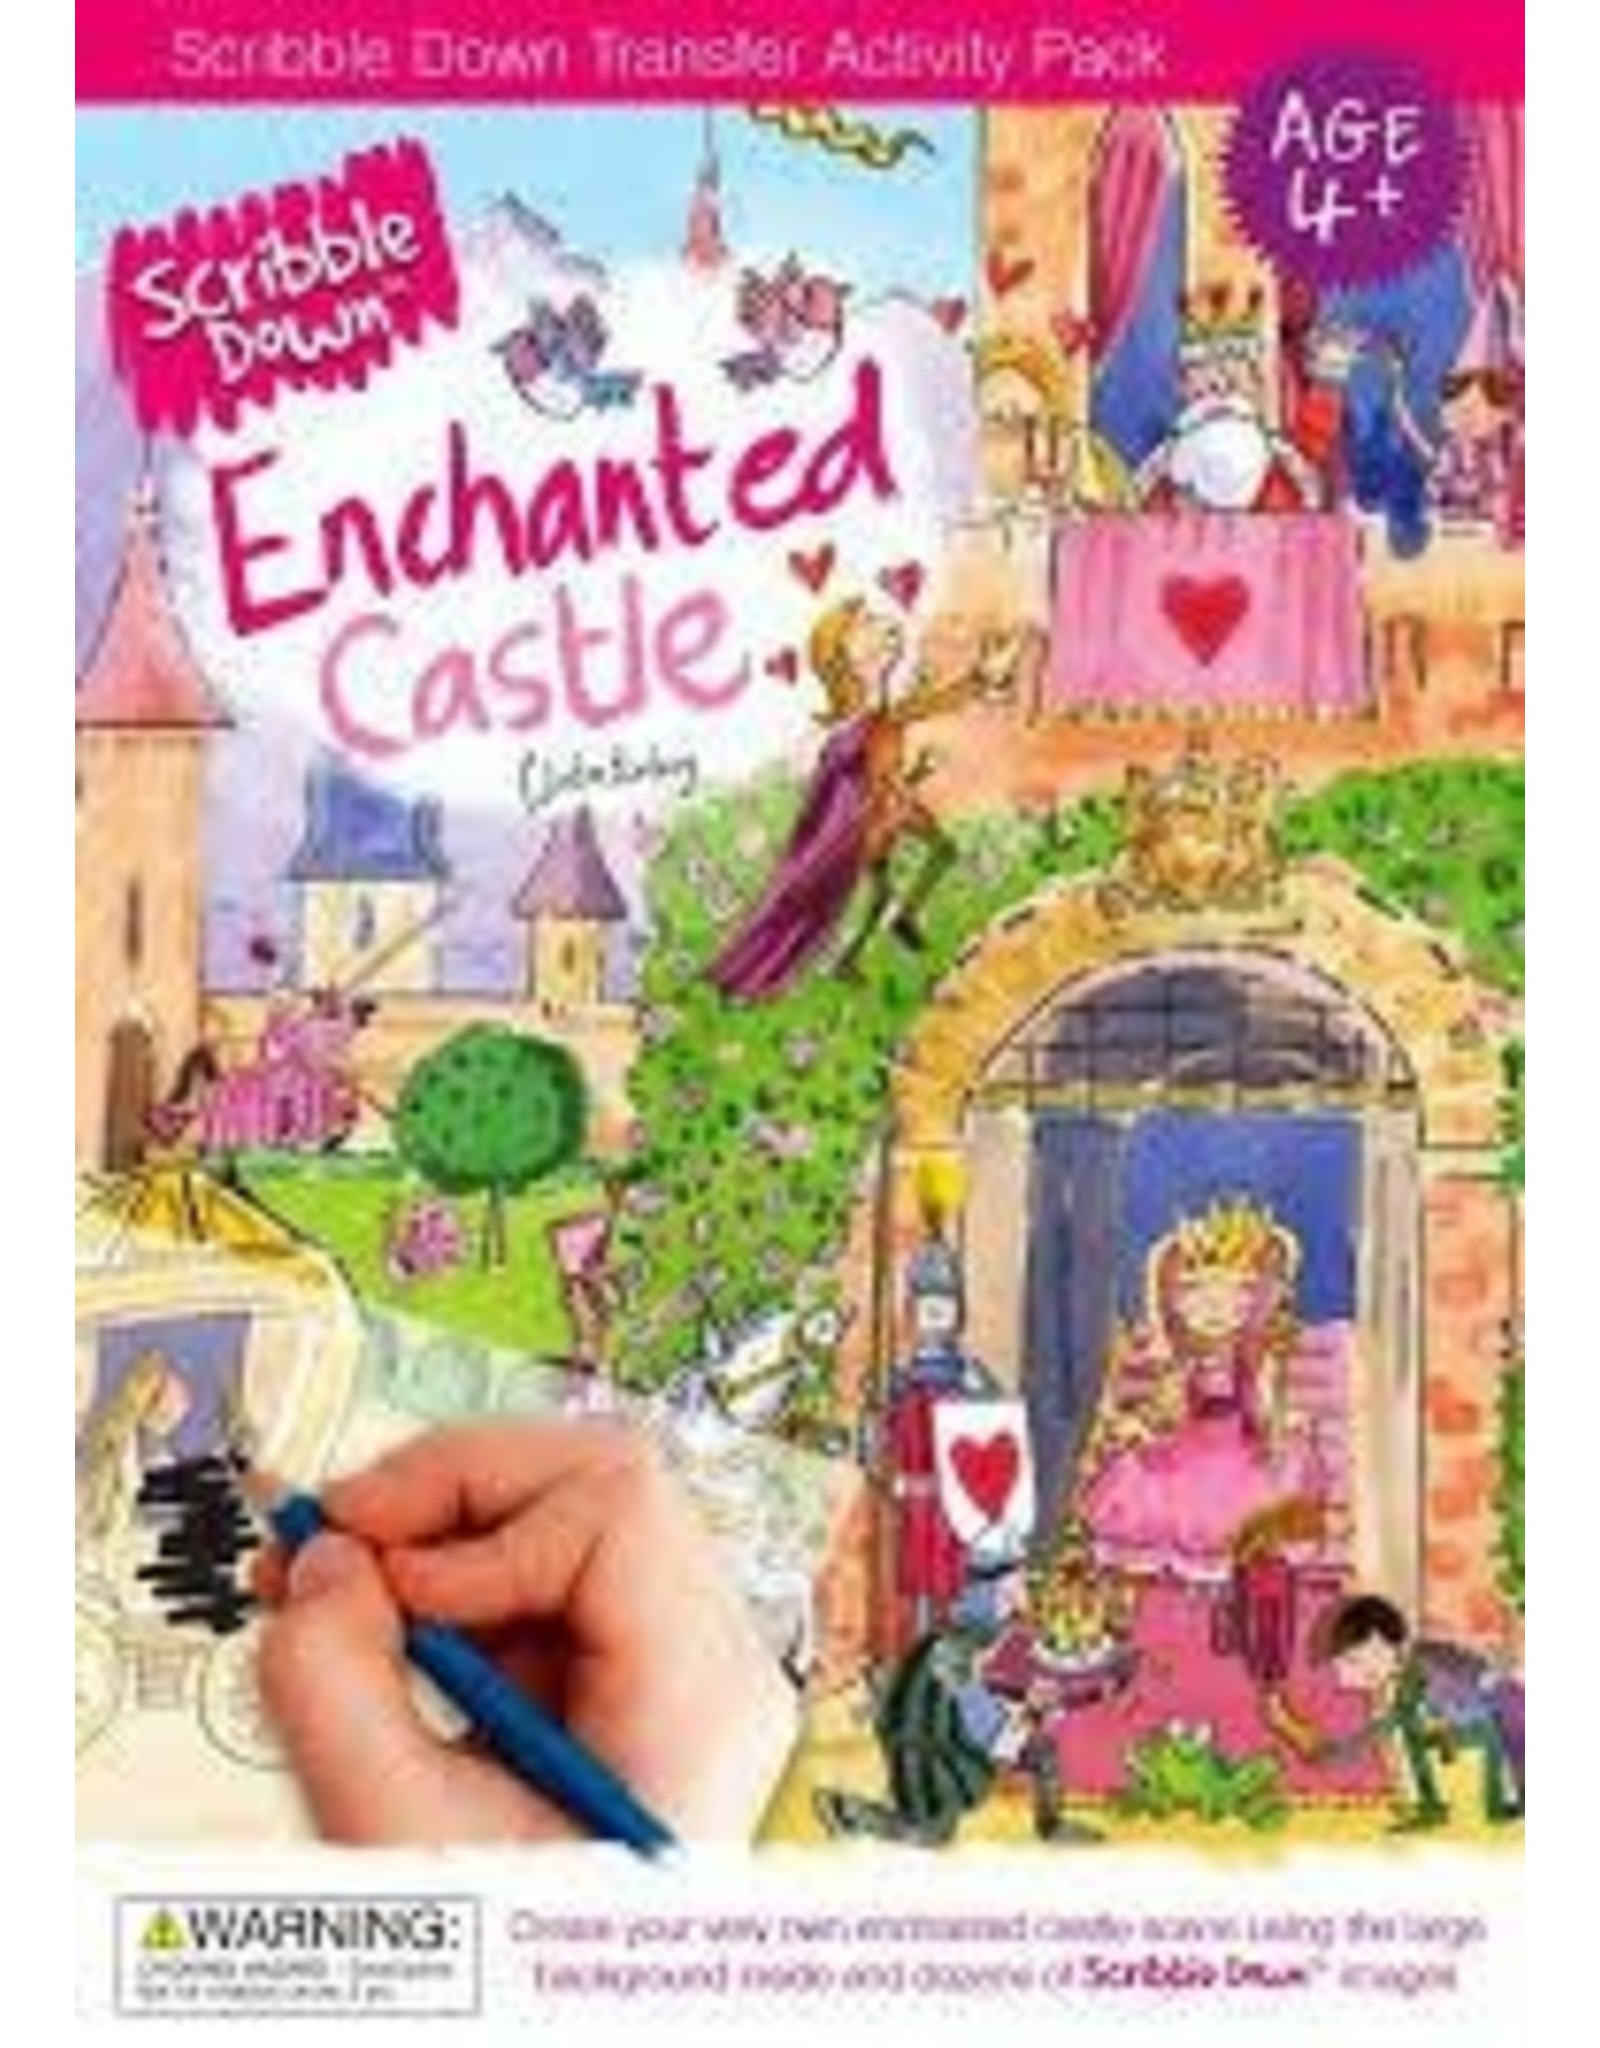 Playwell Enchanted Castle Transfers